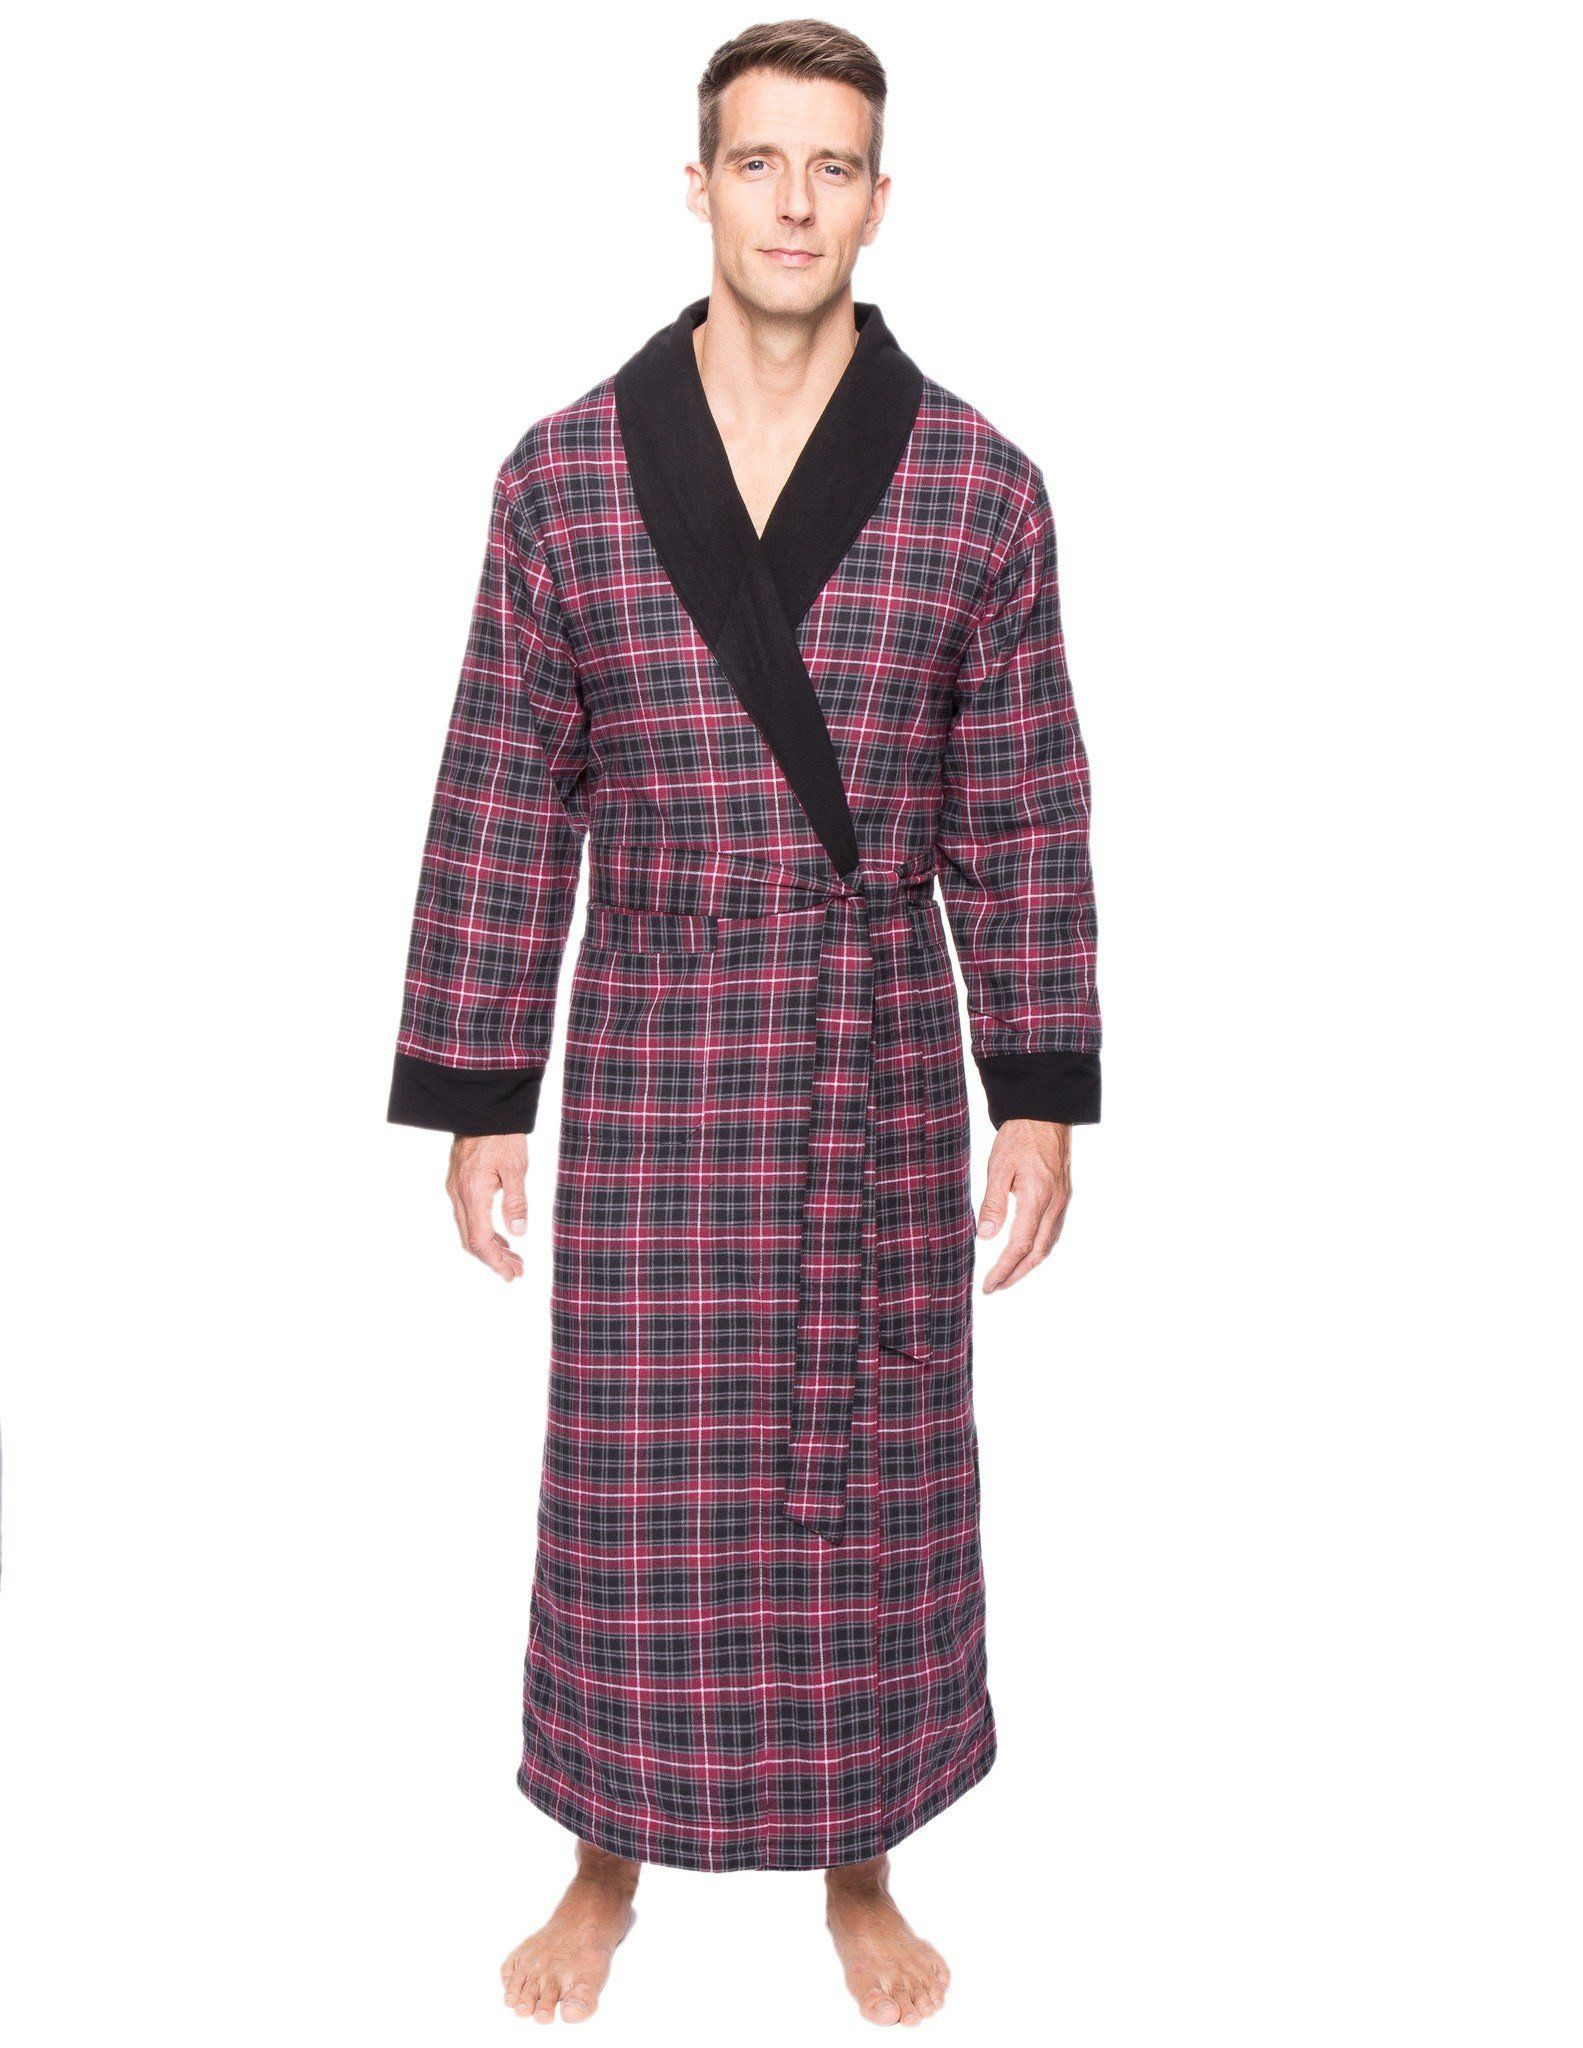 Men\'s Premium 100% Cotton Flannel Fleece Lined Robe | Flannels and ...